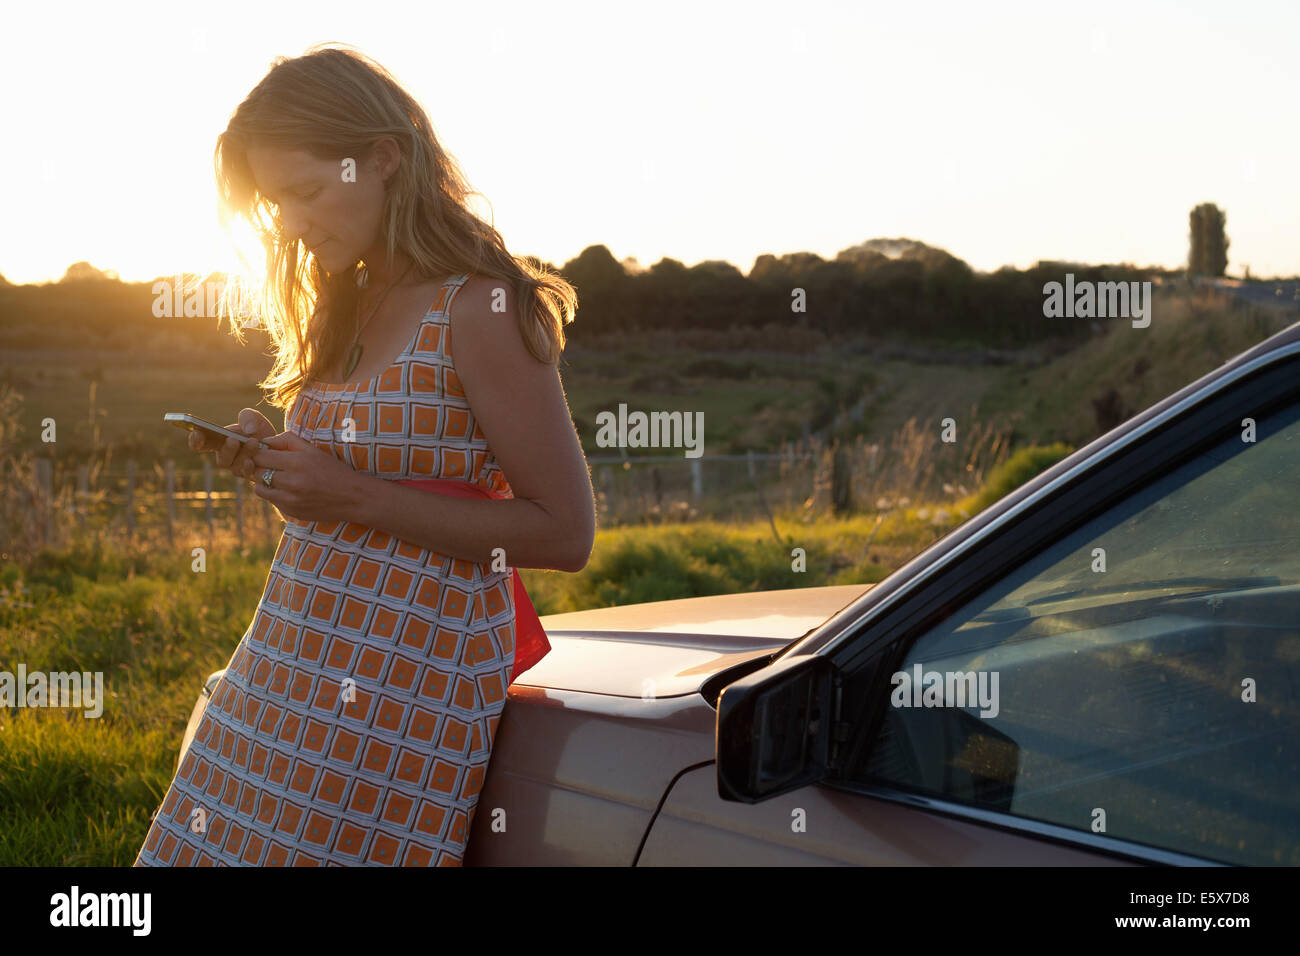 Mid adult woman leaning against voiture texting on smartphone Photo Stock